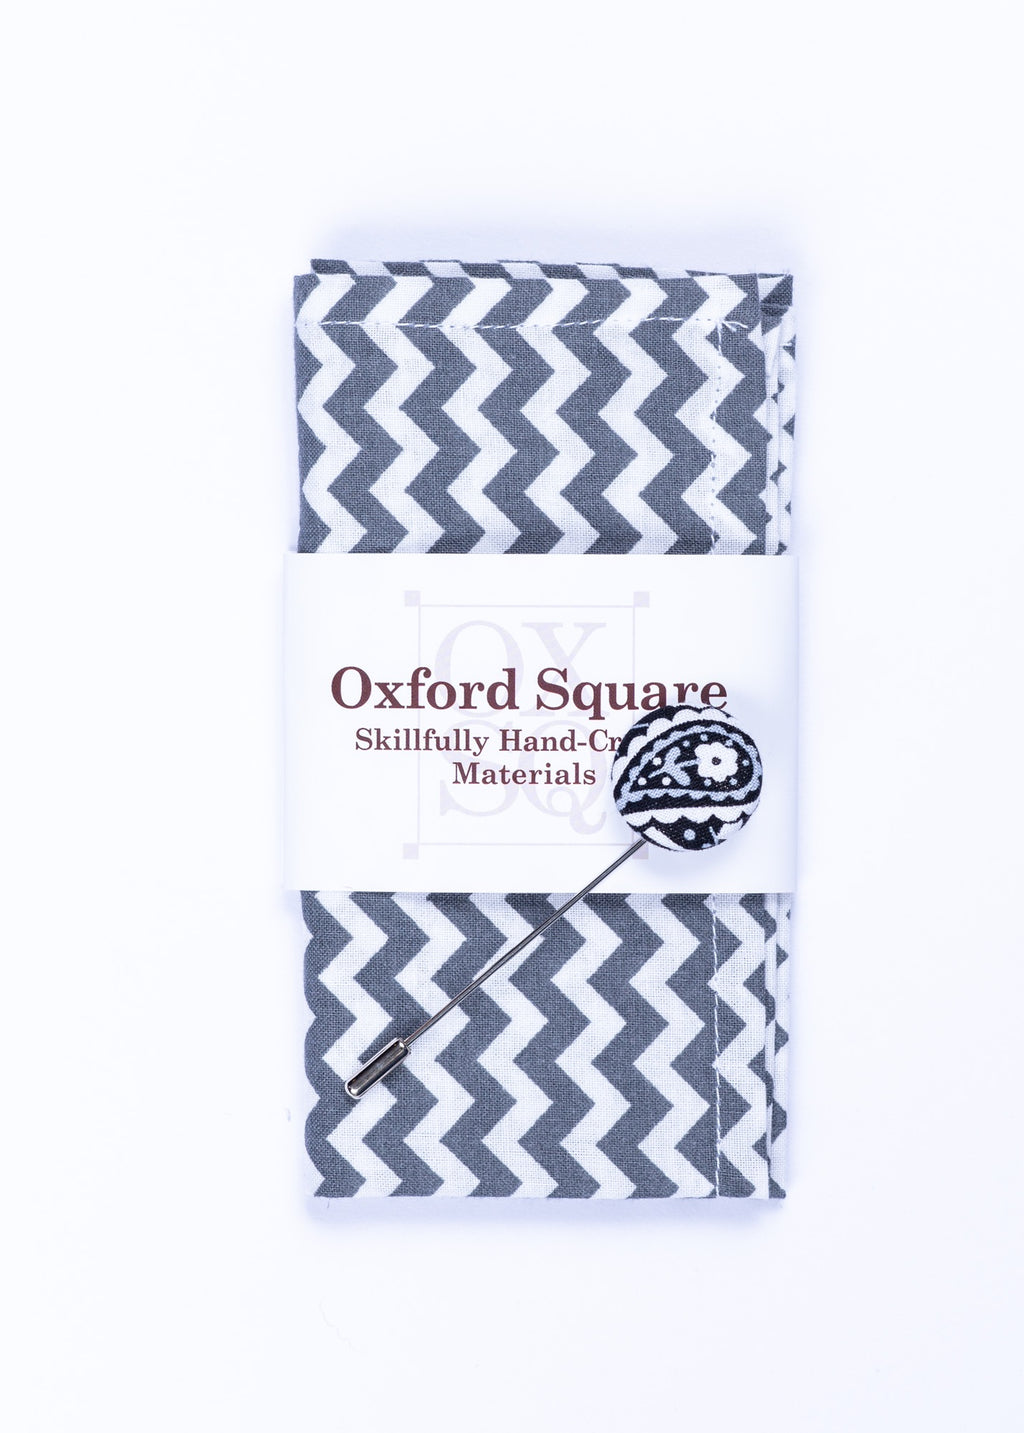 chevron pattern pocket square and lapel pin pack - Oxford Square